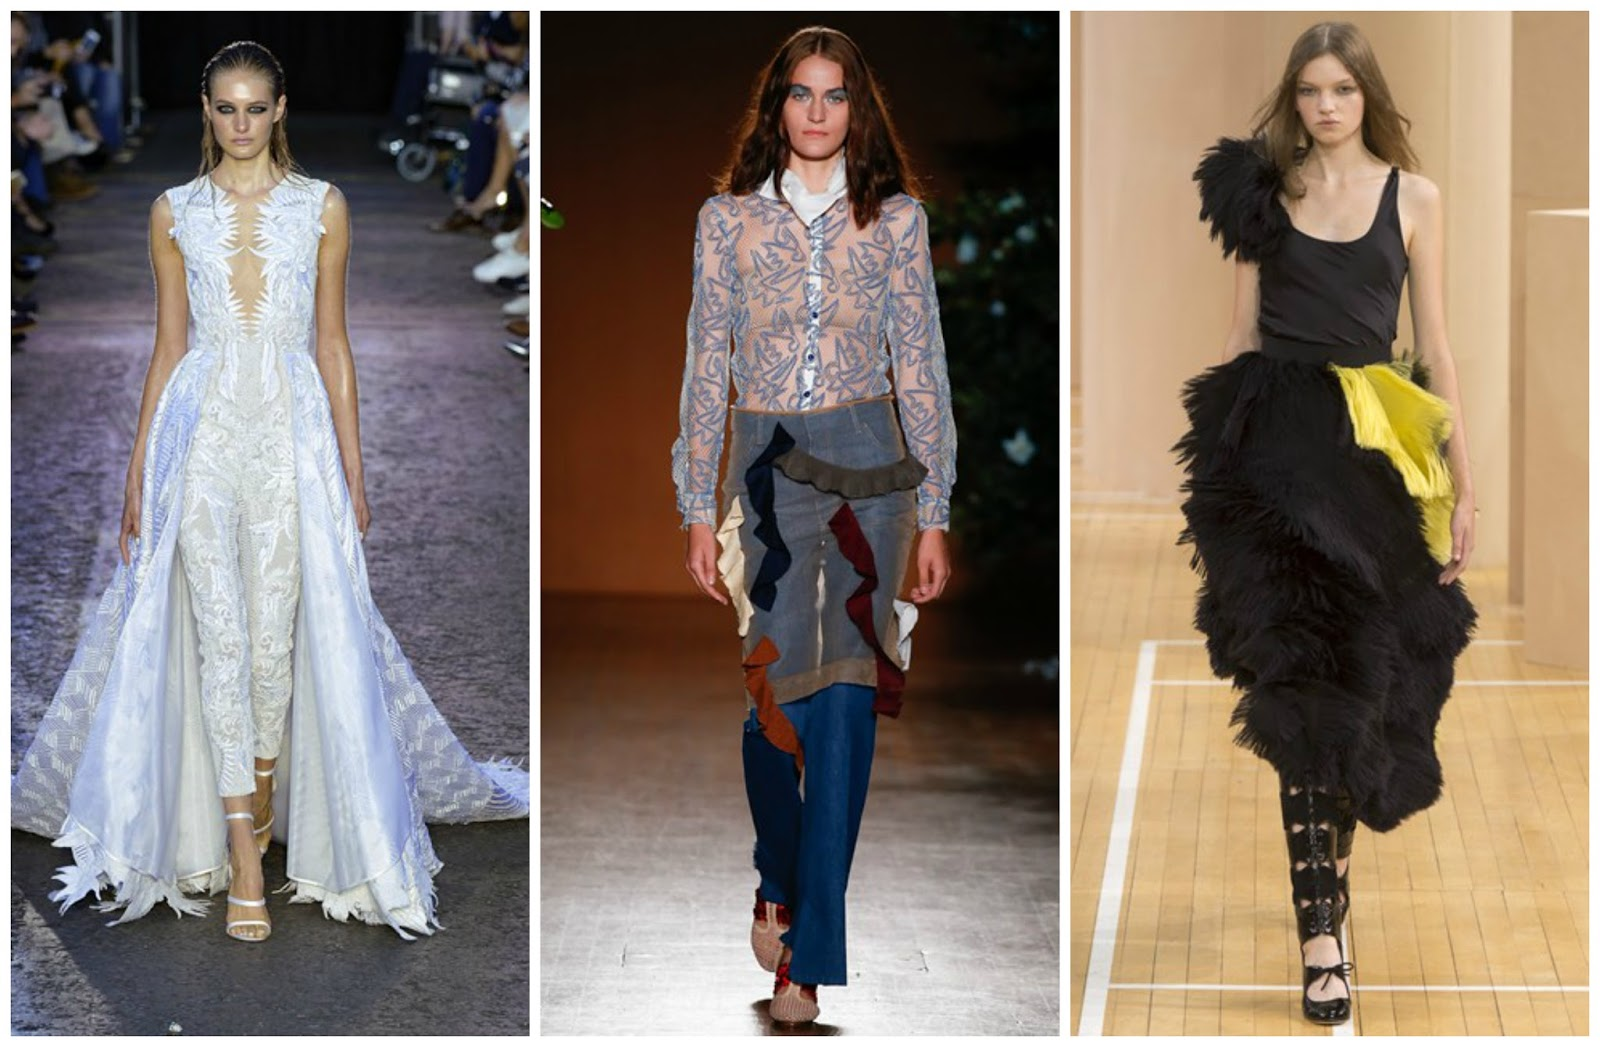 SS16 Trends, London Fashion Week, Trousers with dresses, future of blogging, 2016, blogging